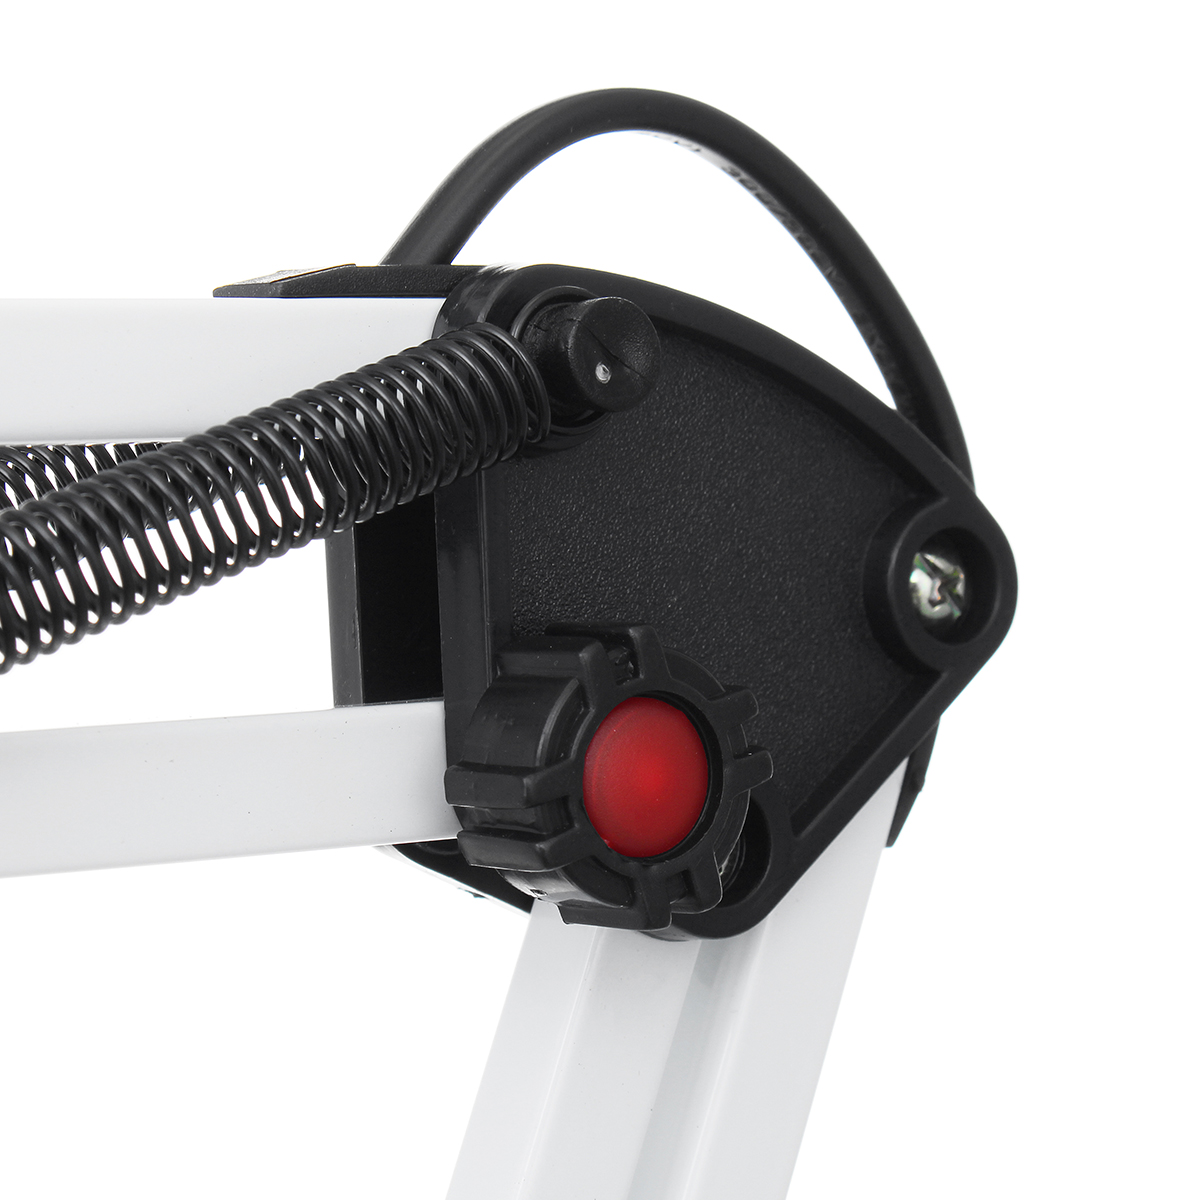 110-240V 100W Infrared Red Heat Light Therapeutic Home Therapy Lamp Pain Relief Floor Stand